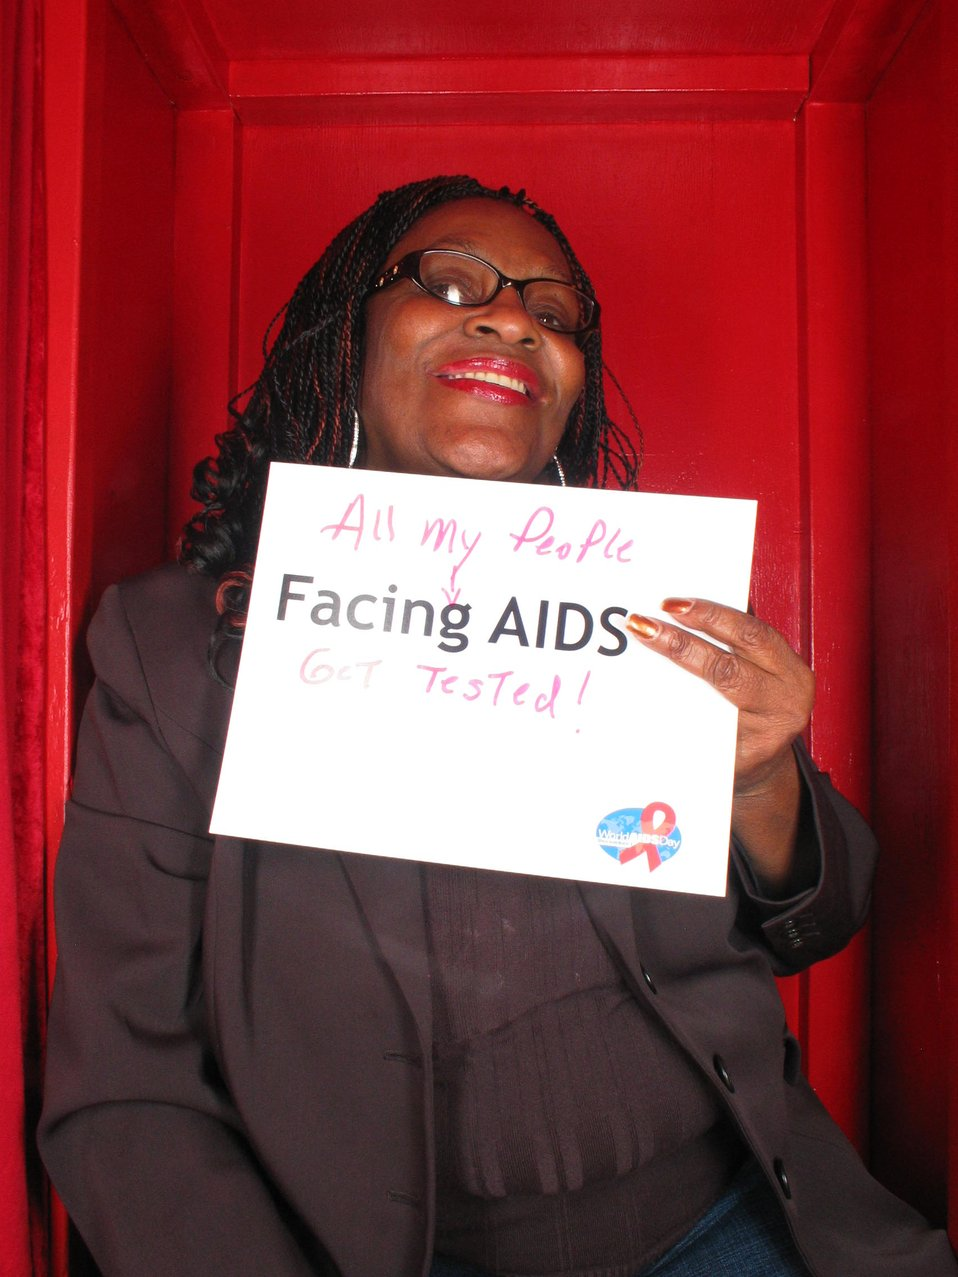 All my people Facing AIDS Get tested!